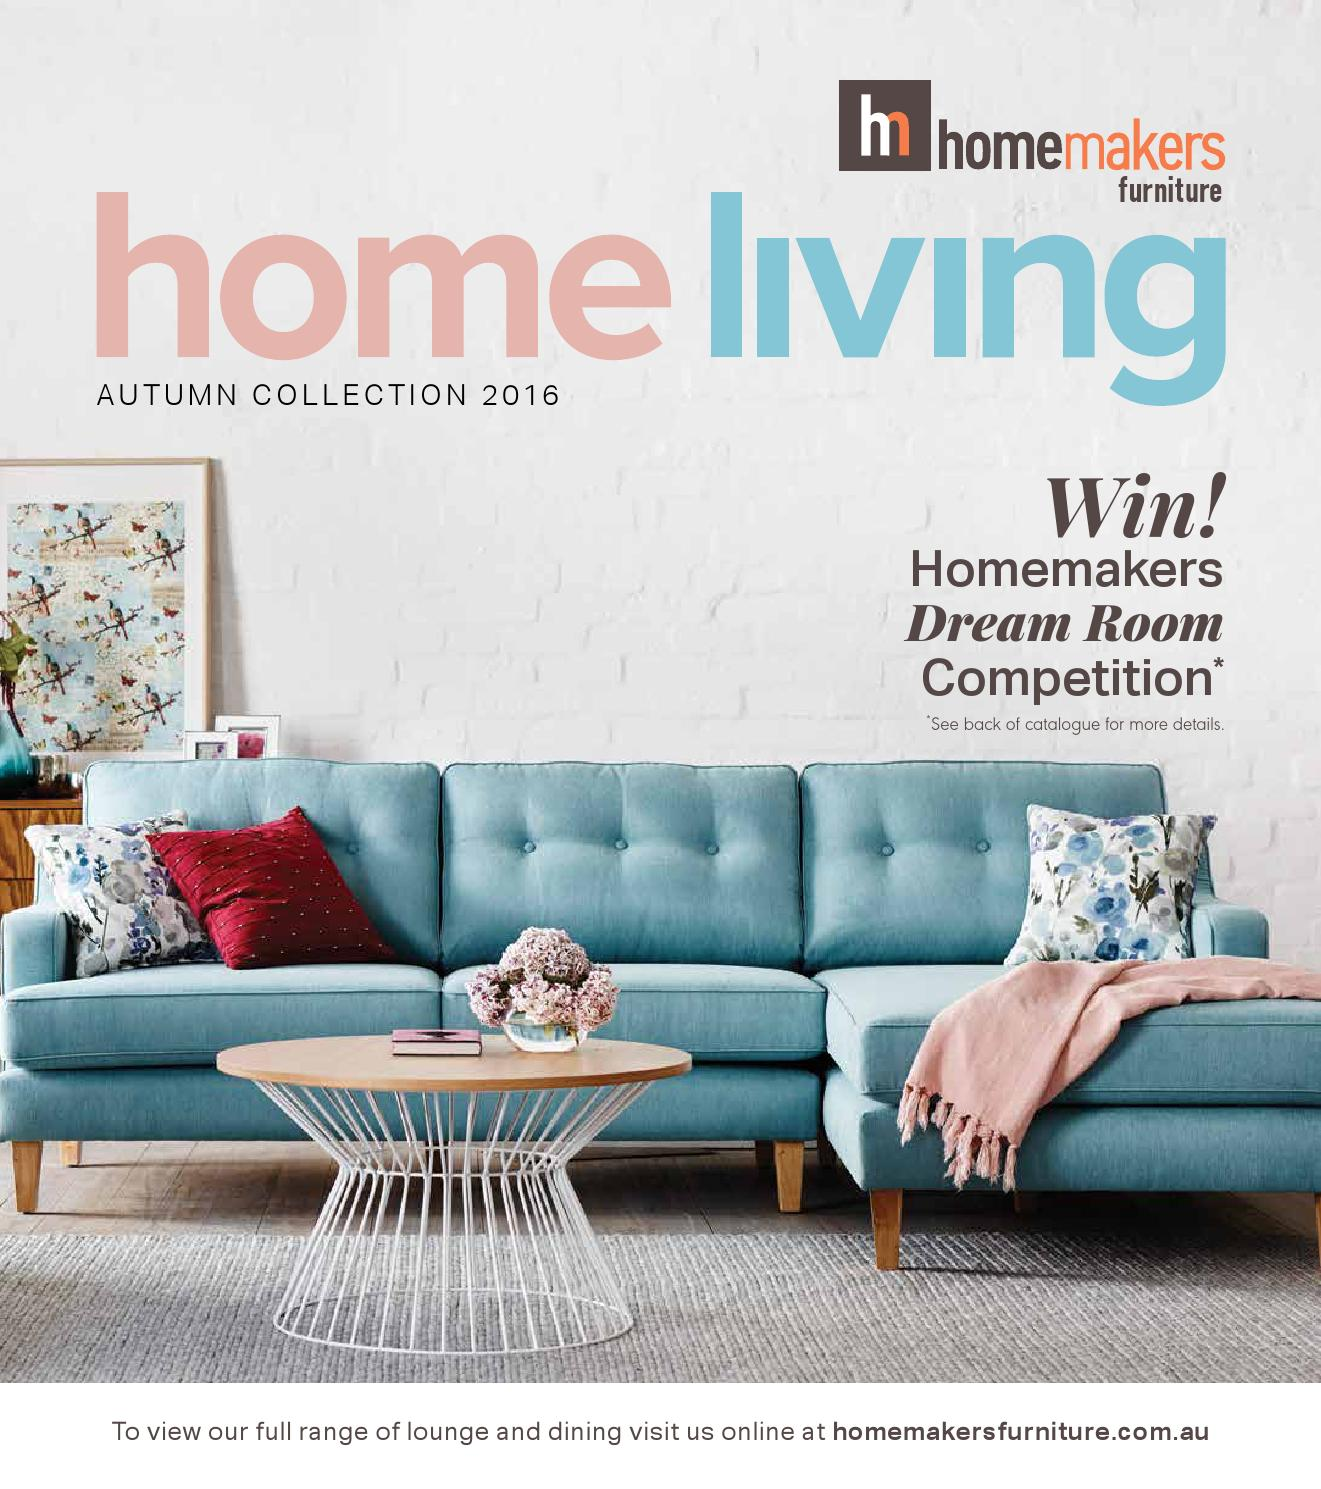 Homemakers Furniture Autumn Collection Catalogue By Homemakers Furniture Issuu